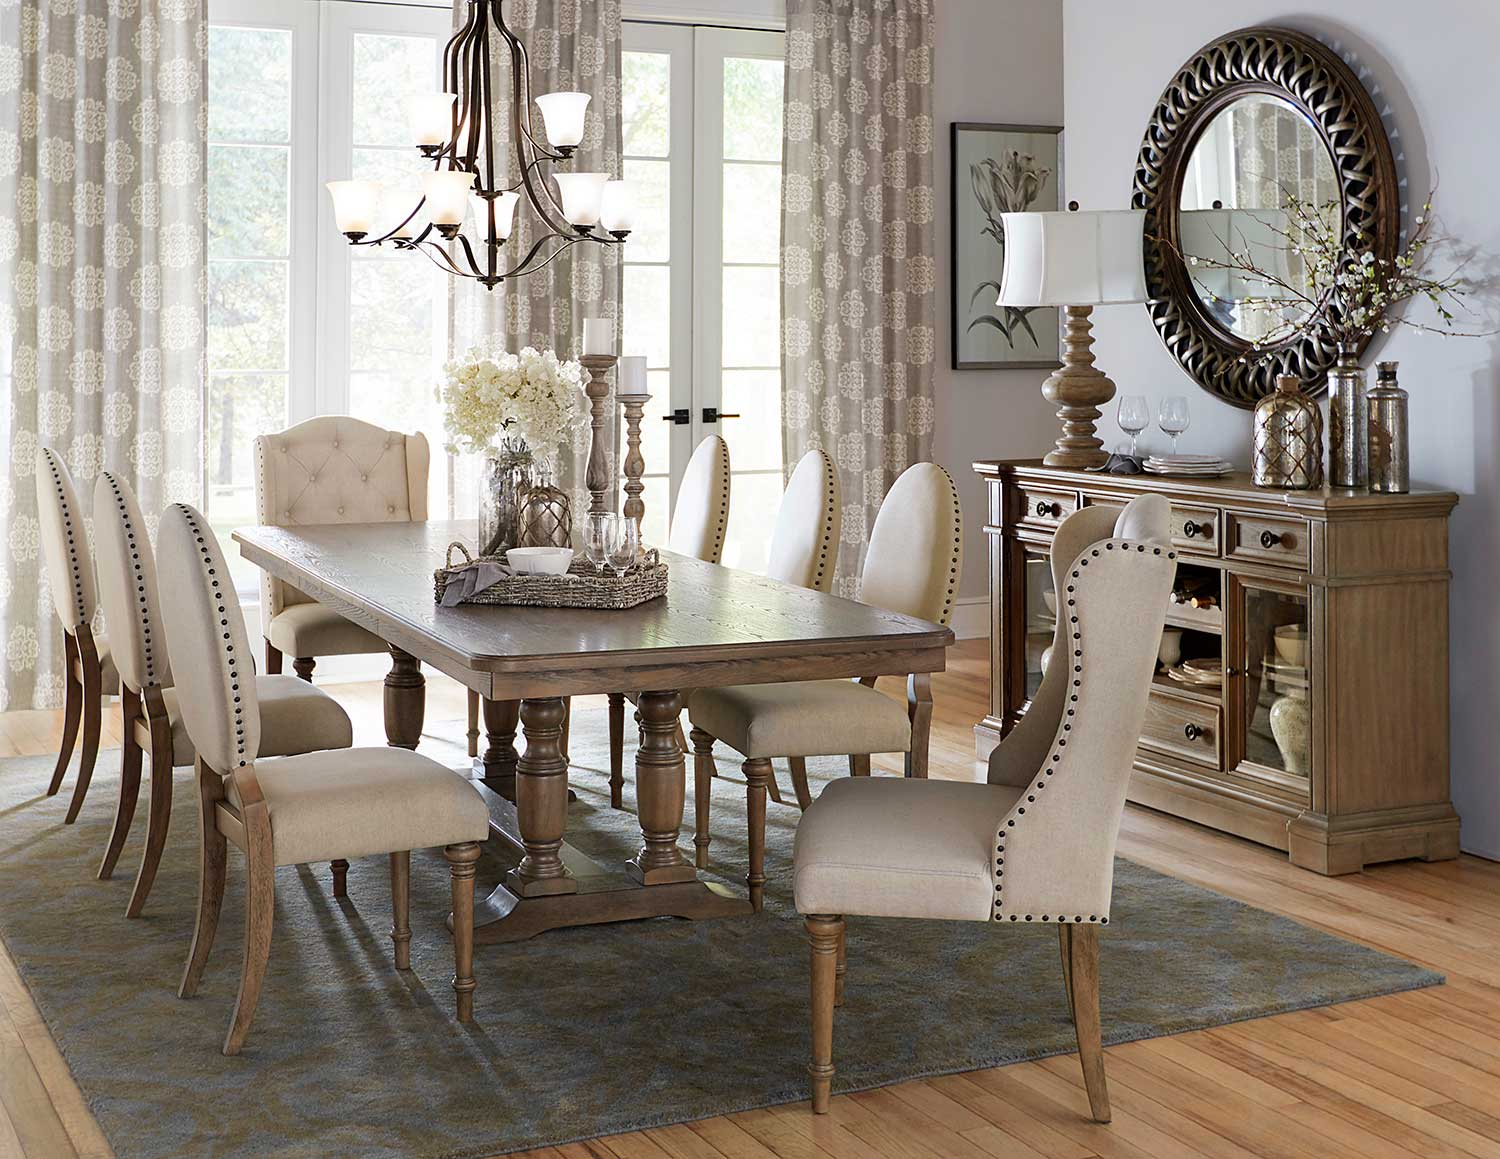 Homelegance Avignon Dining Set - Natural Taupe - Oak veneer